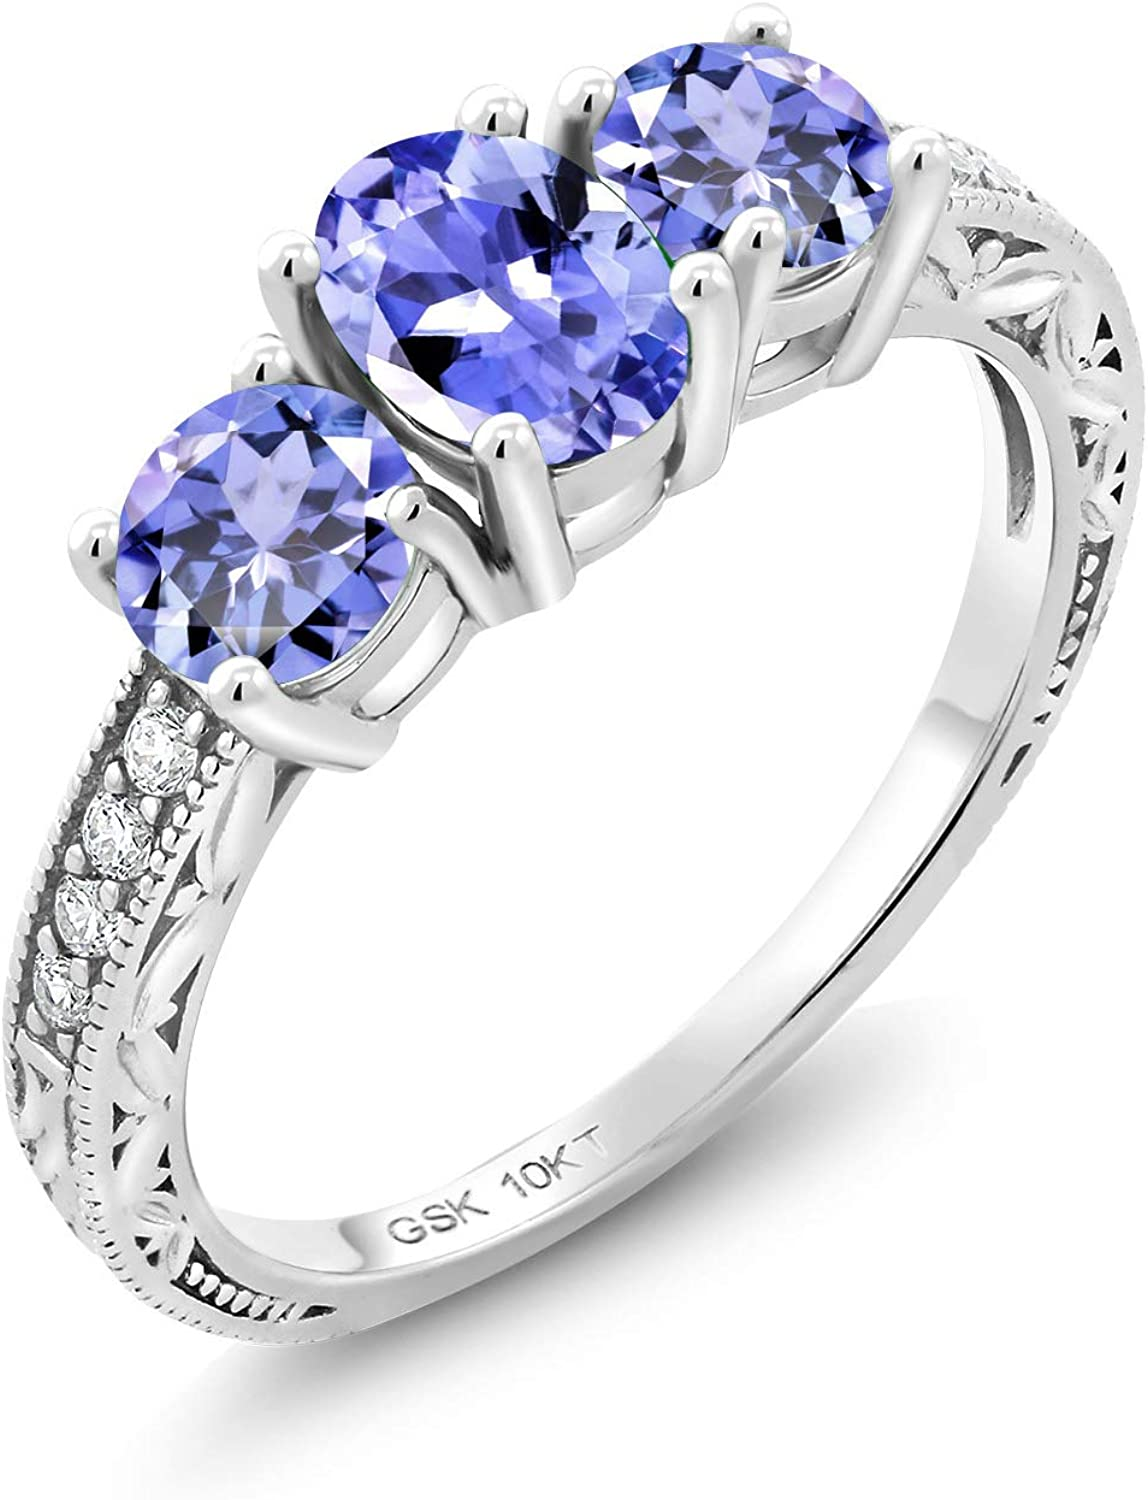 Gem Stone King 10K White Gold Blue Tanzanite and Lab Grown Diamond 3 Stone Women Engagement Ring (1.71 Ct Oval Gemstone Birthstone, Available in size 5, 6, 7, 8, 9)